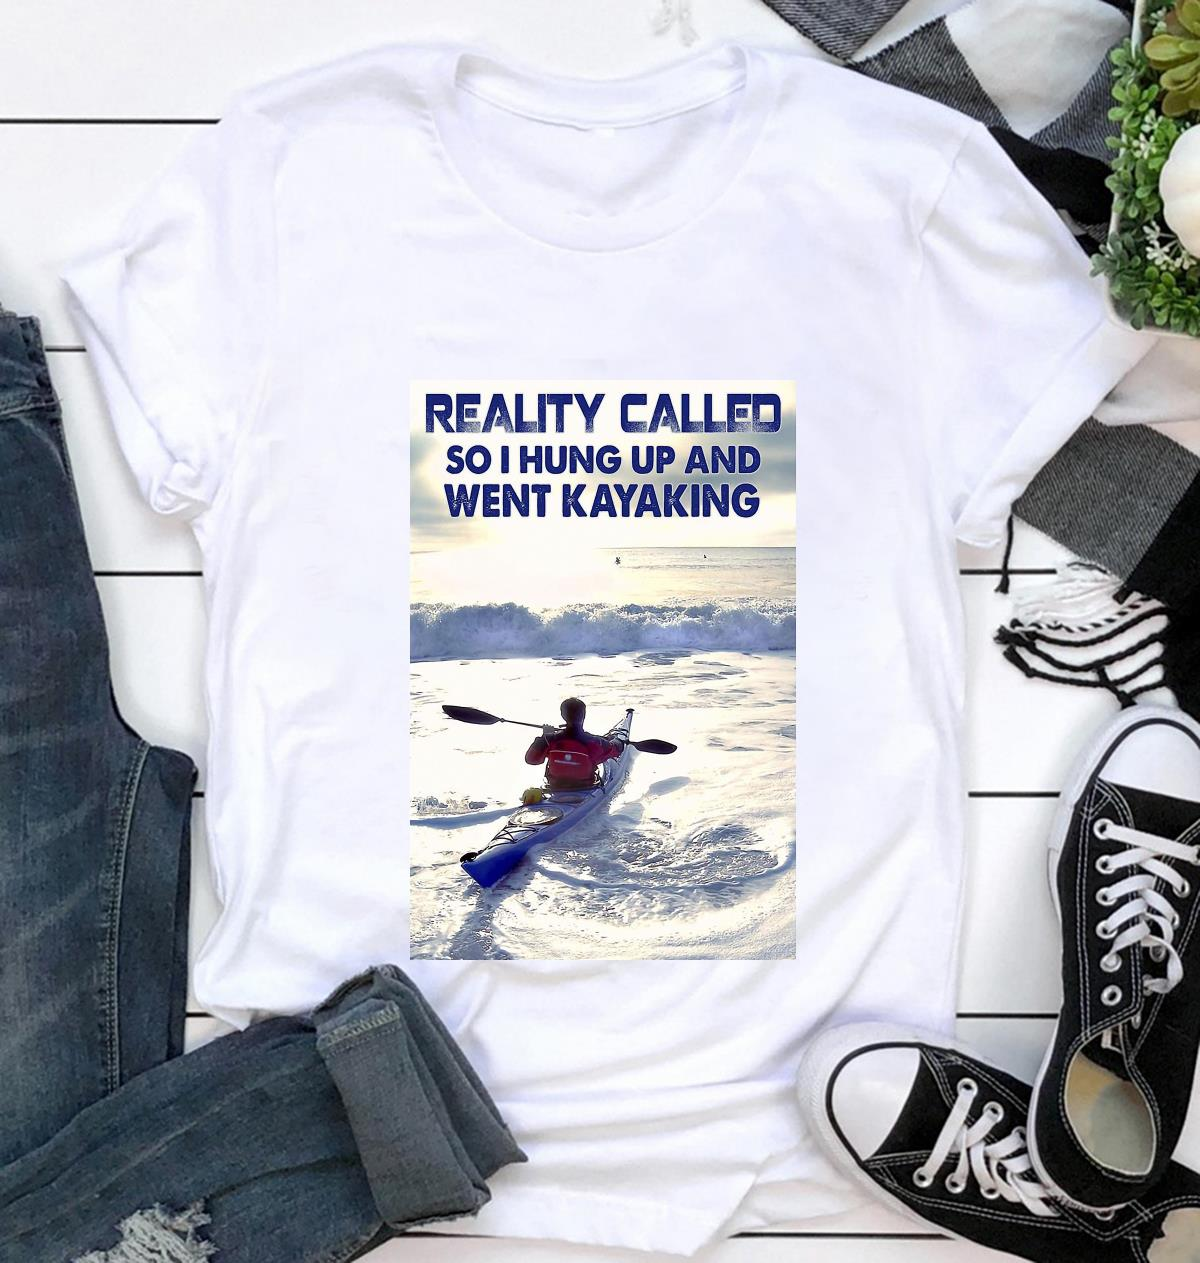 Reality called so I hung up and went kayaking poster t-shirt